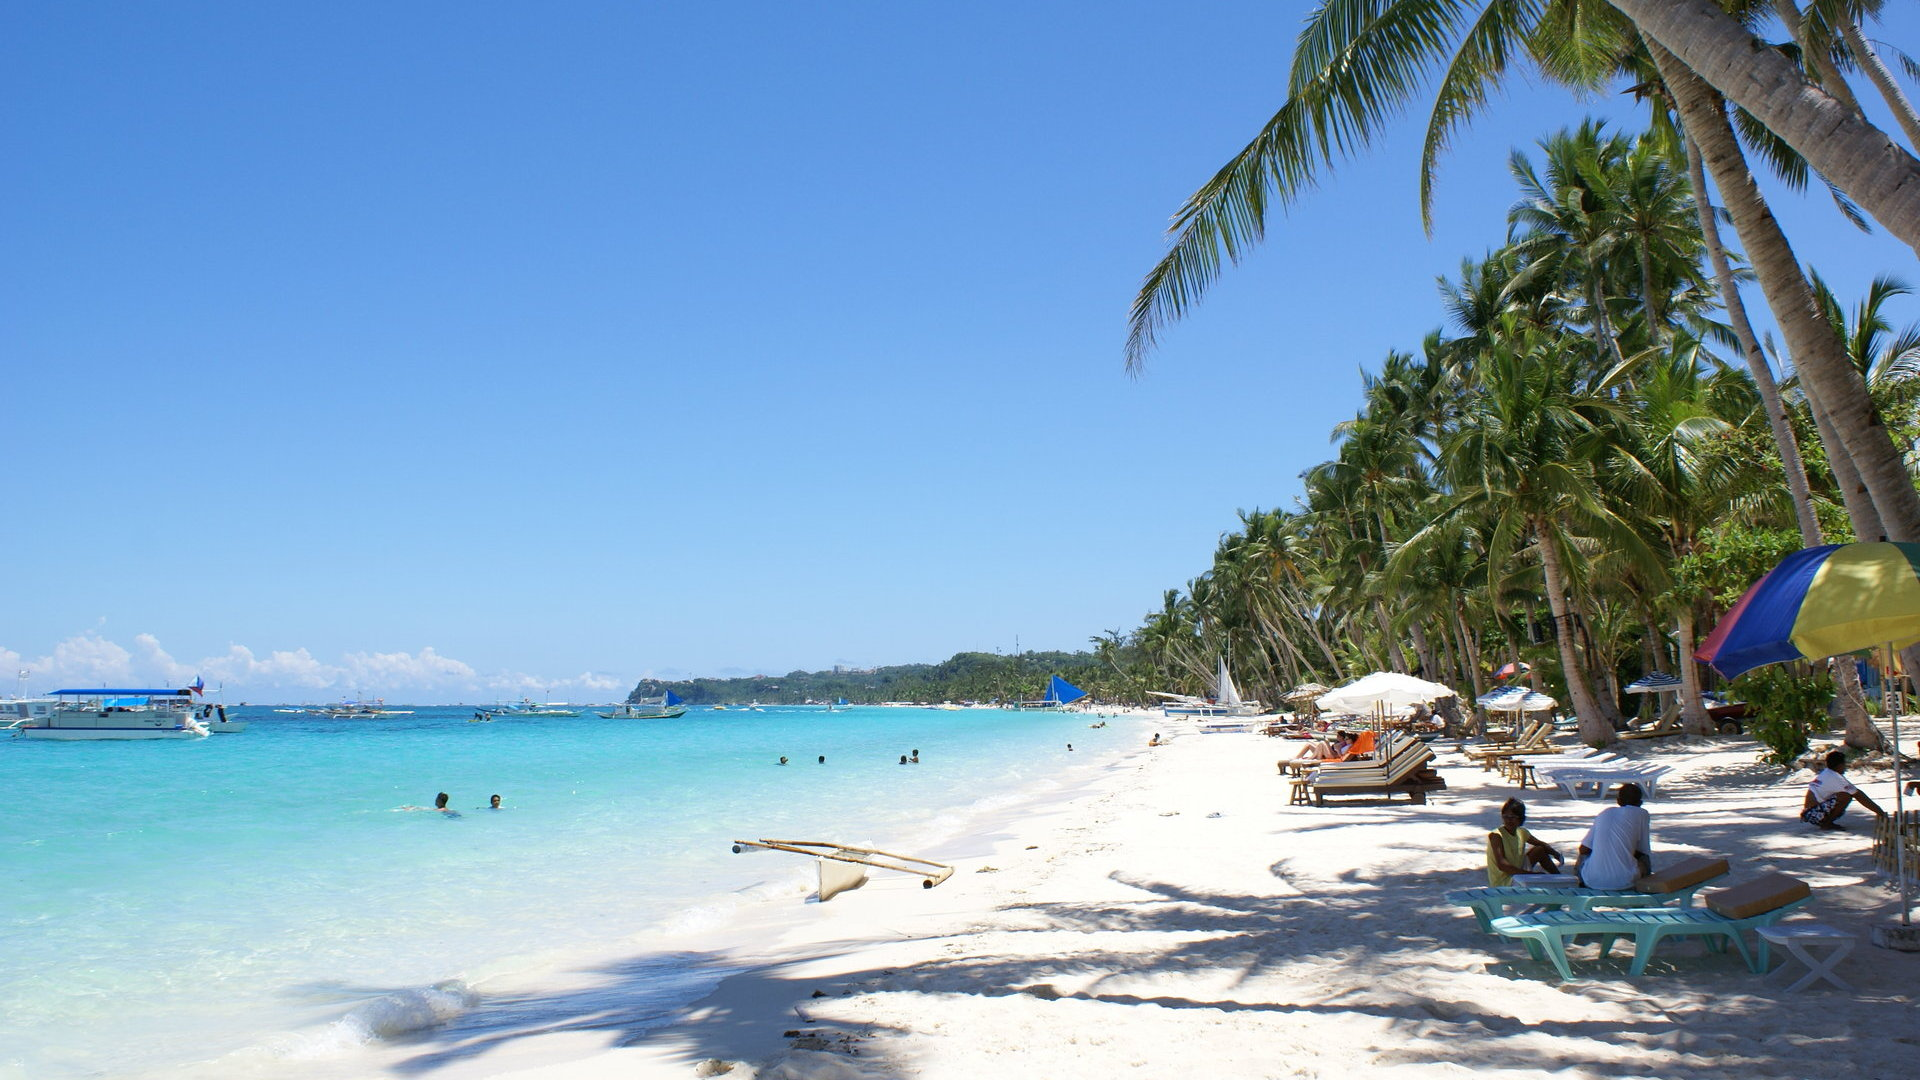 Beach wallpaper. Beautiful white sand, blue ocean, blue sky on Boracay island